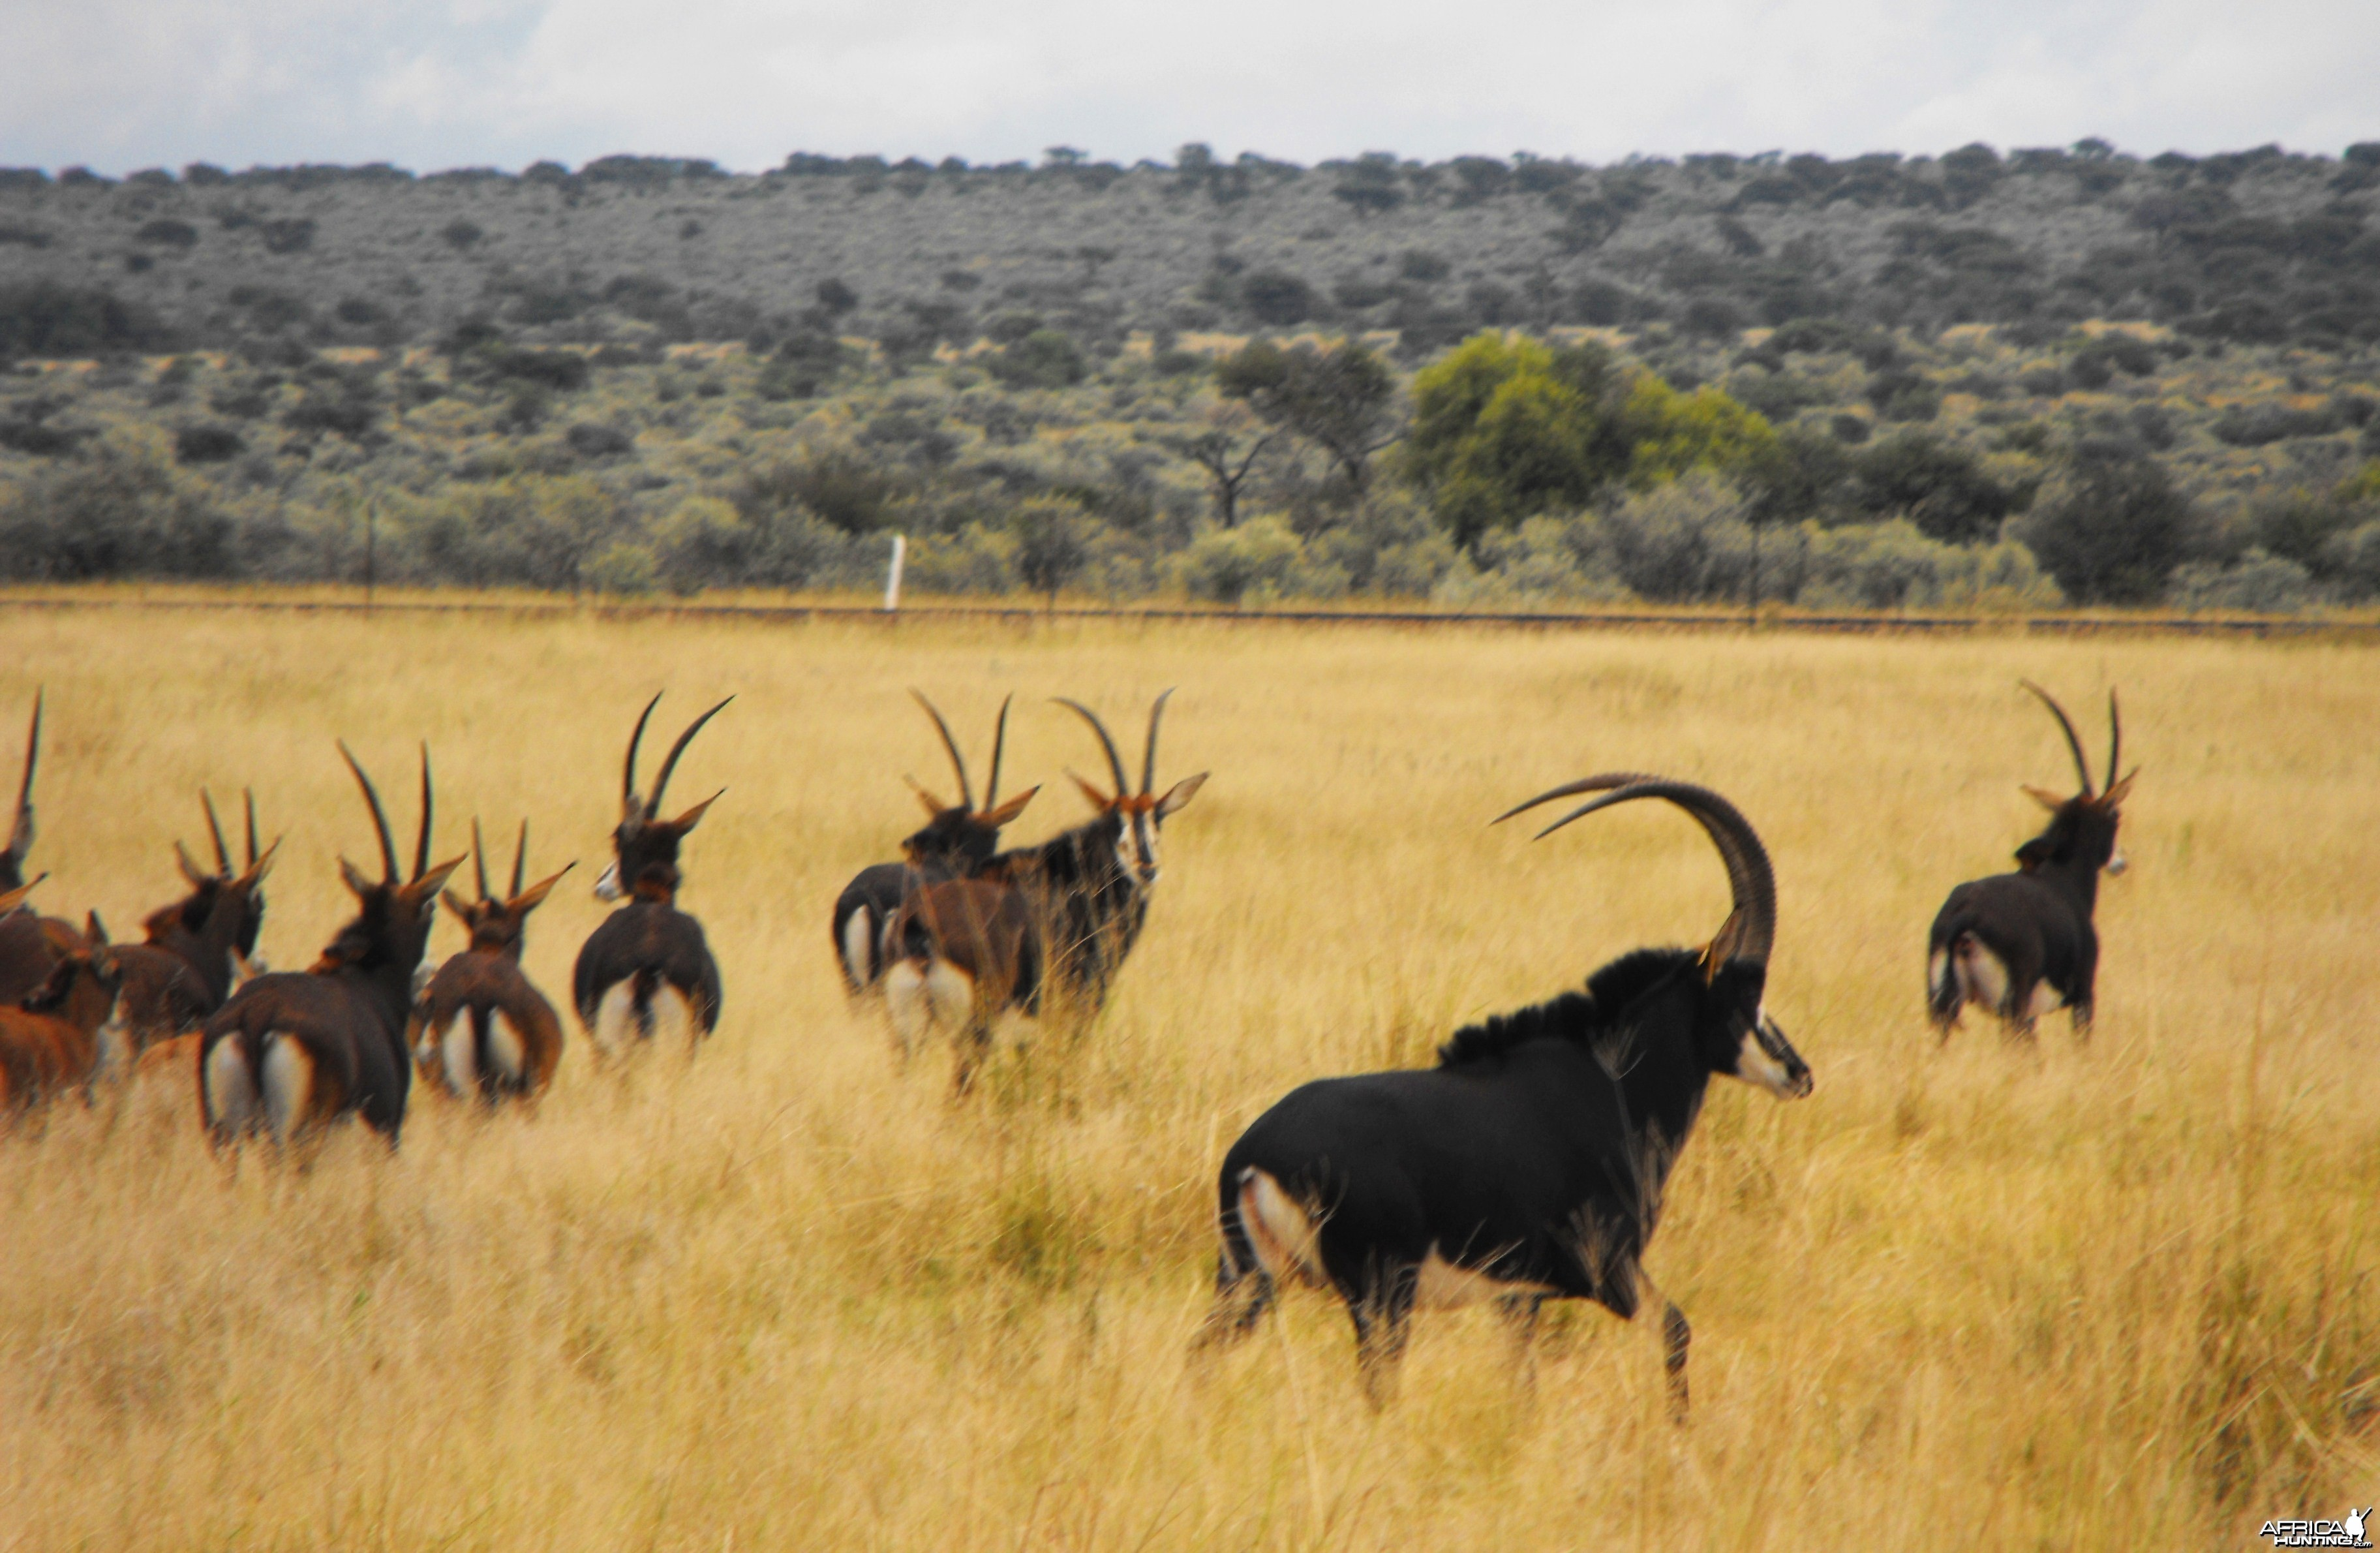 First look at a herd of Sable! Wow